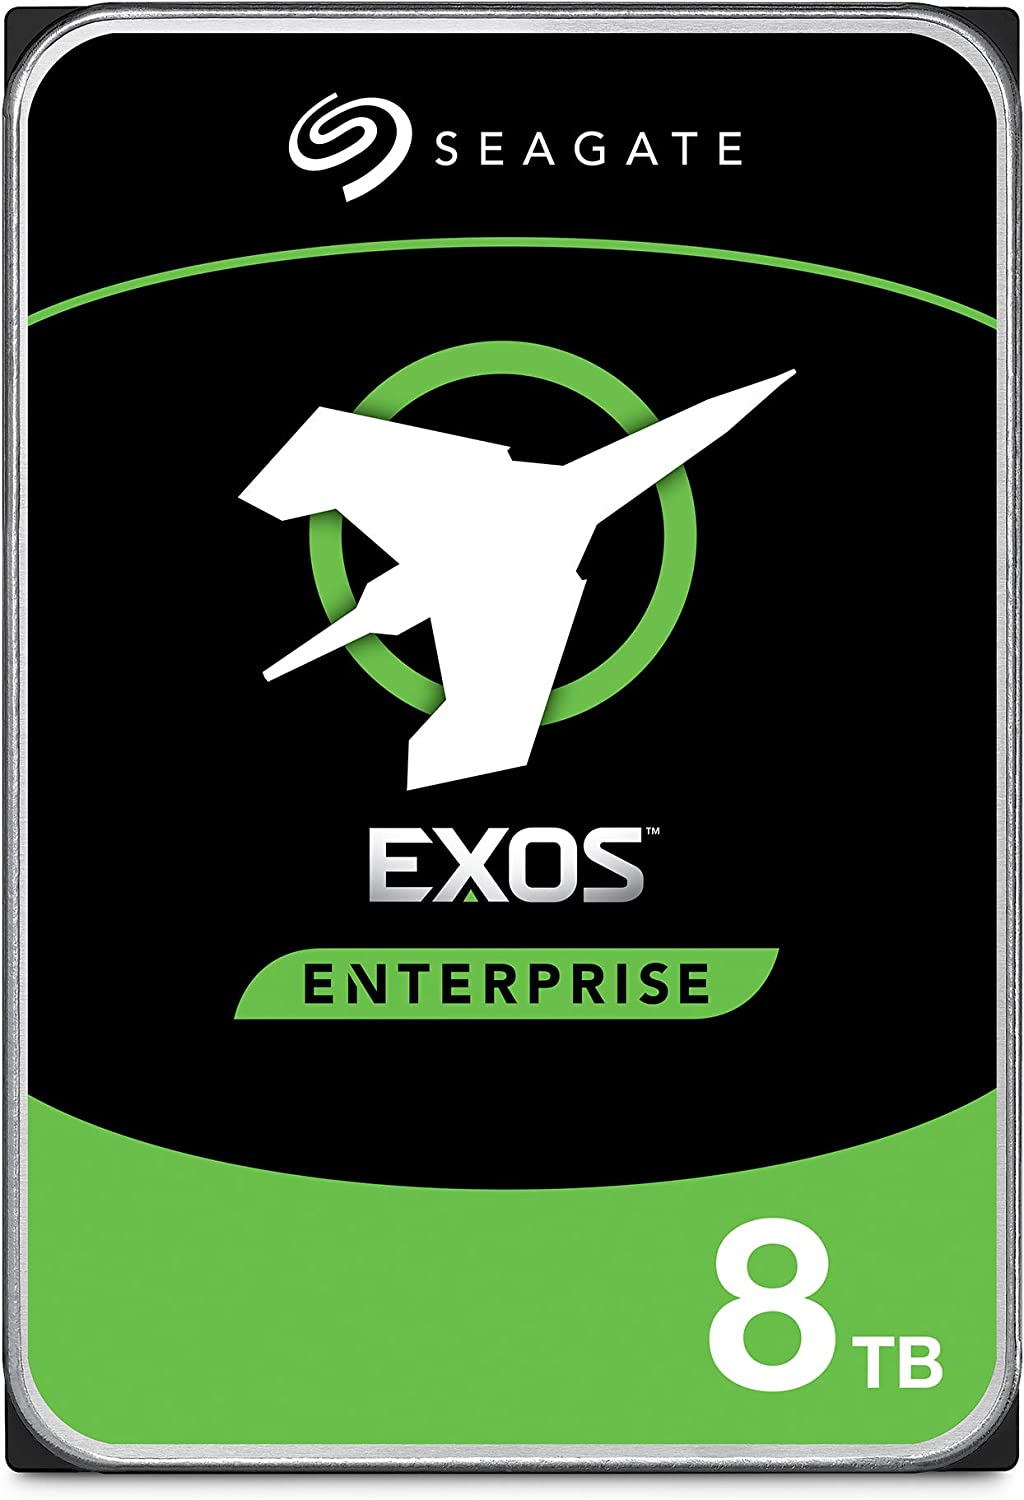 Seagate Exos 7E8 8TB Internal Hard Drive HDD – 3.5 Inch 6Gb/s 7200 RPM 256 MB Cache for Enterprise, Data Center – Frustration Free Packaging (ST8000NM0055)